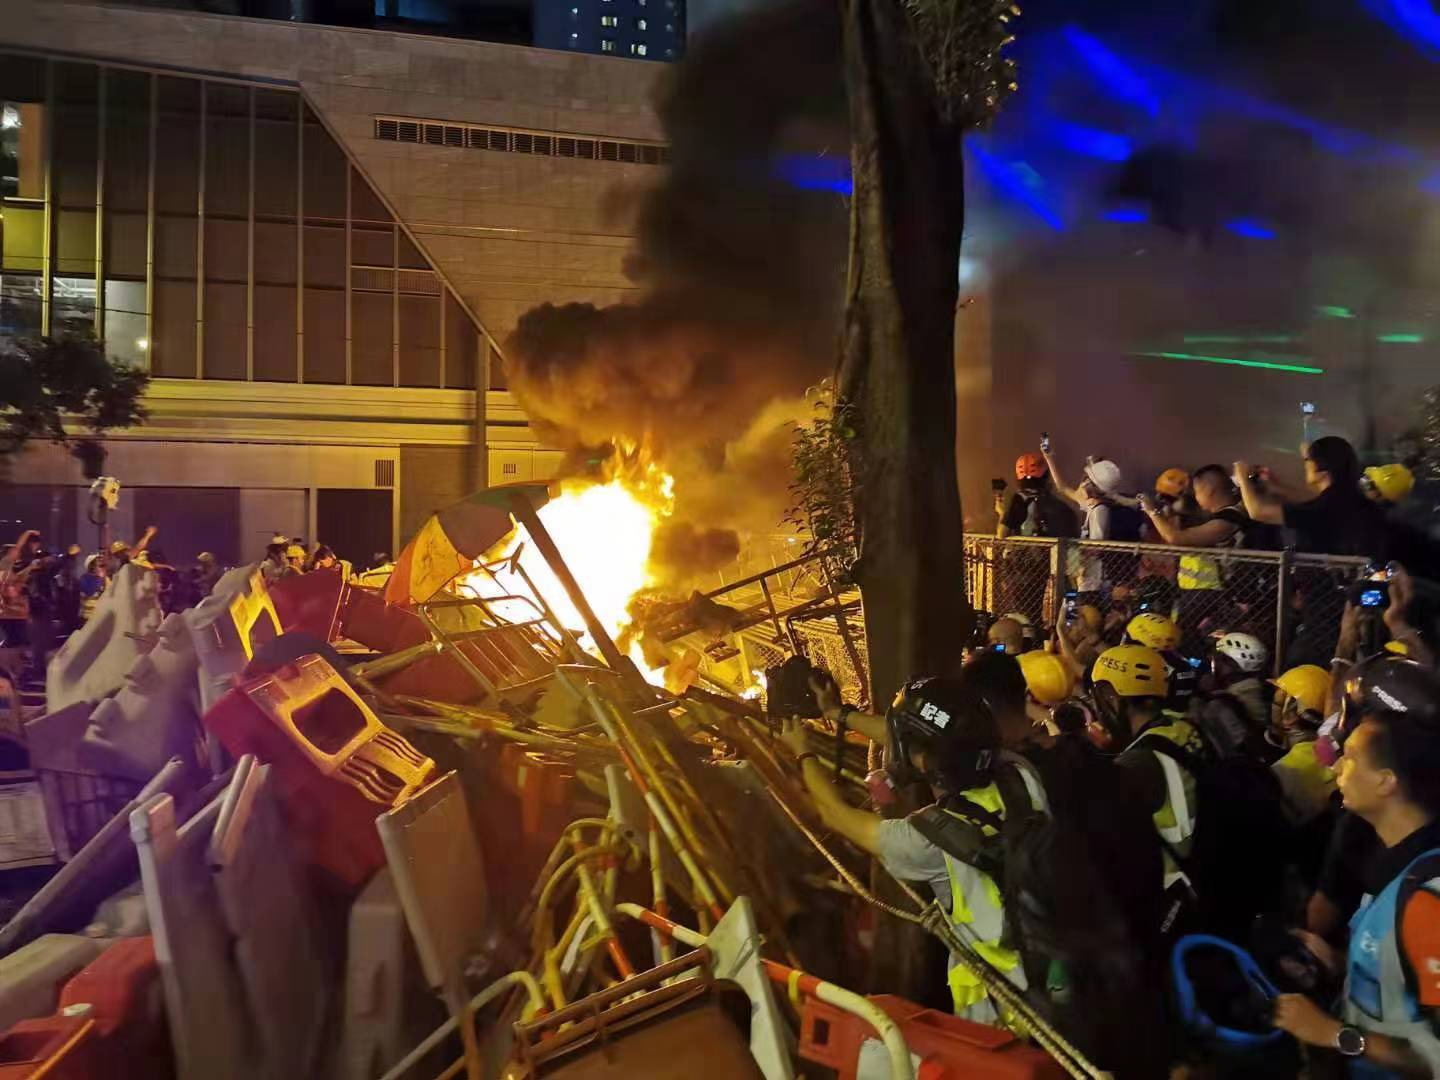 Rioters in Hong Kong vandalize government buildings, throw petrol bombs